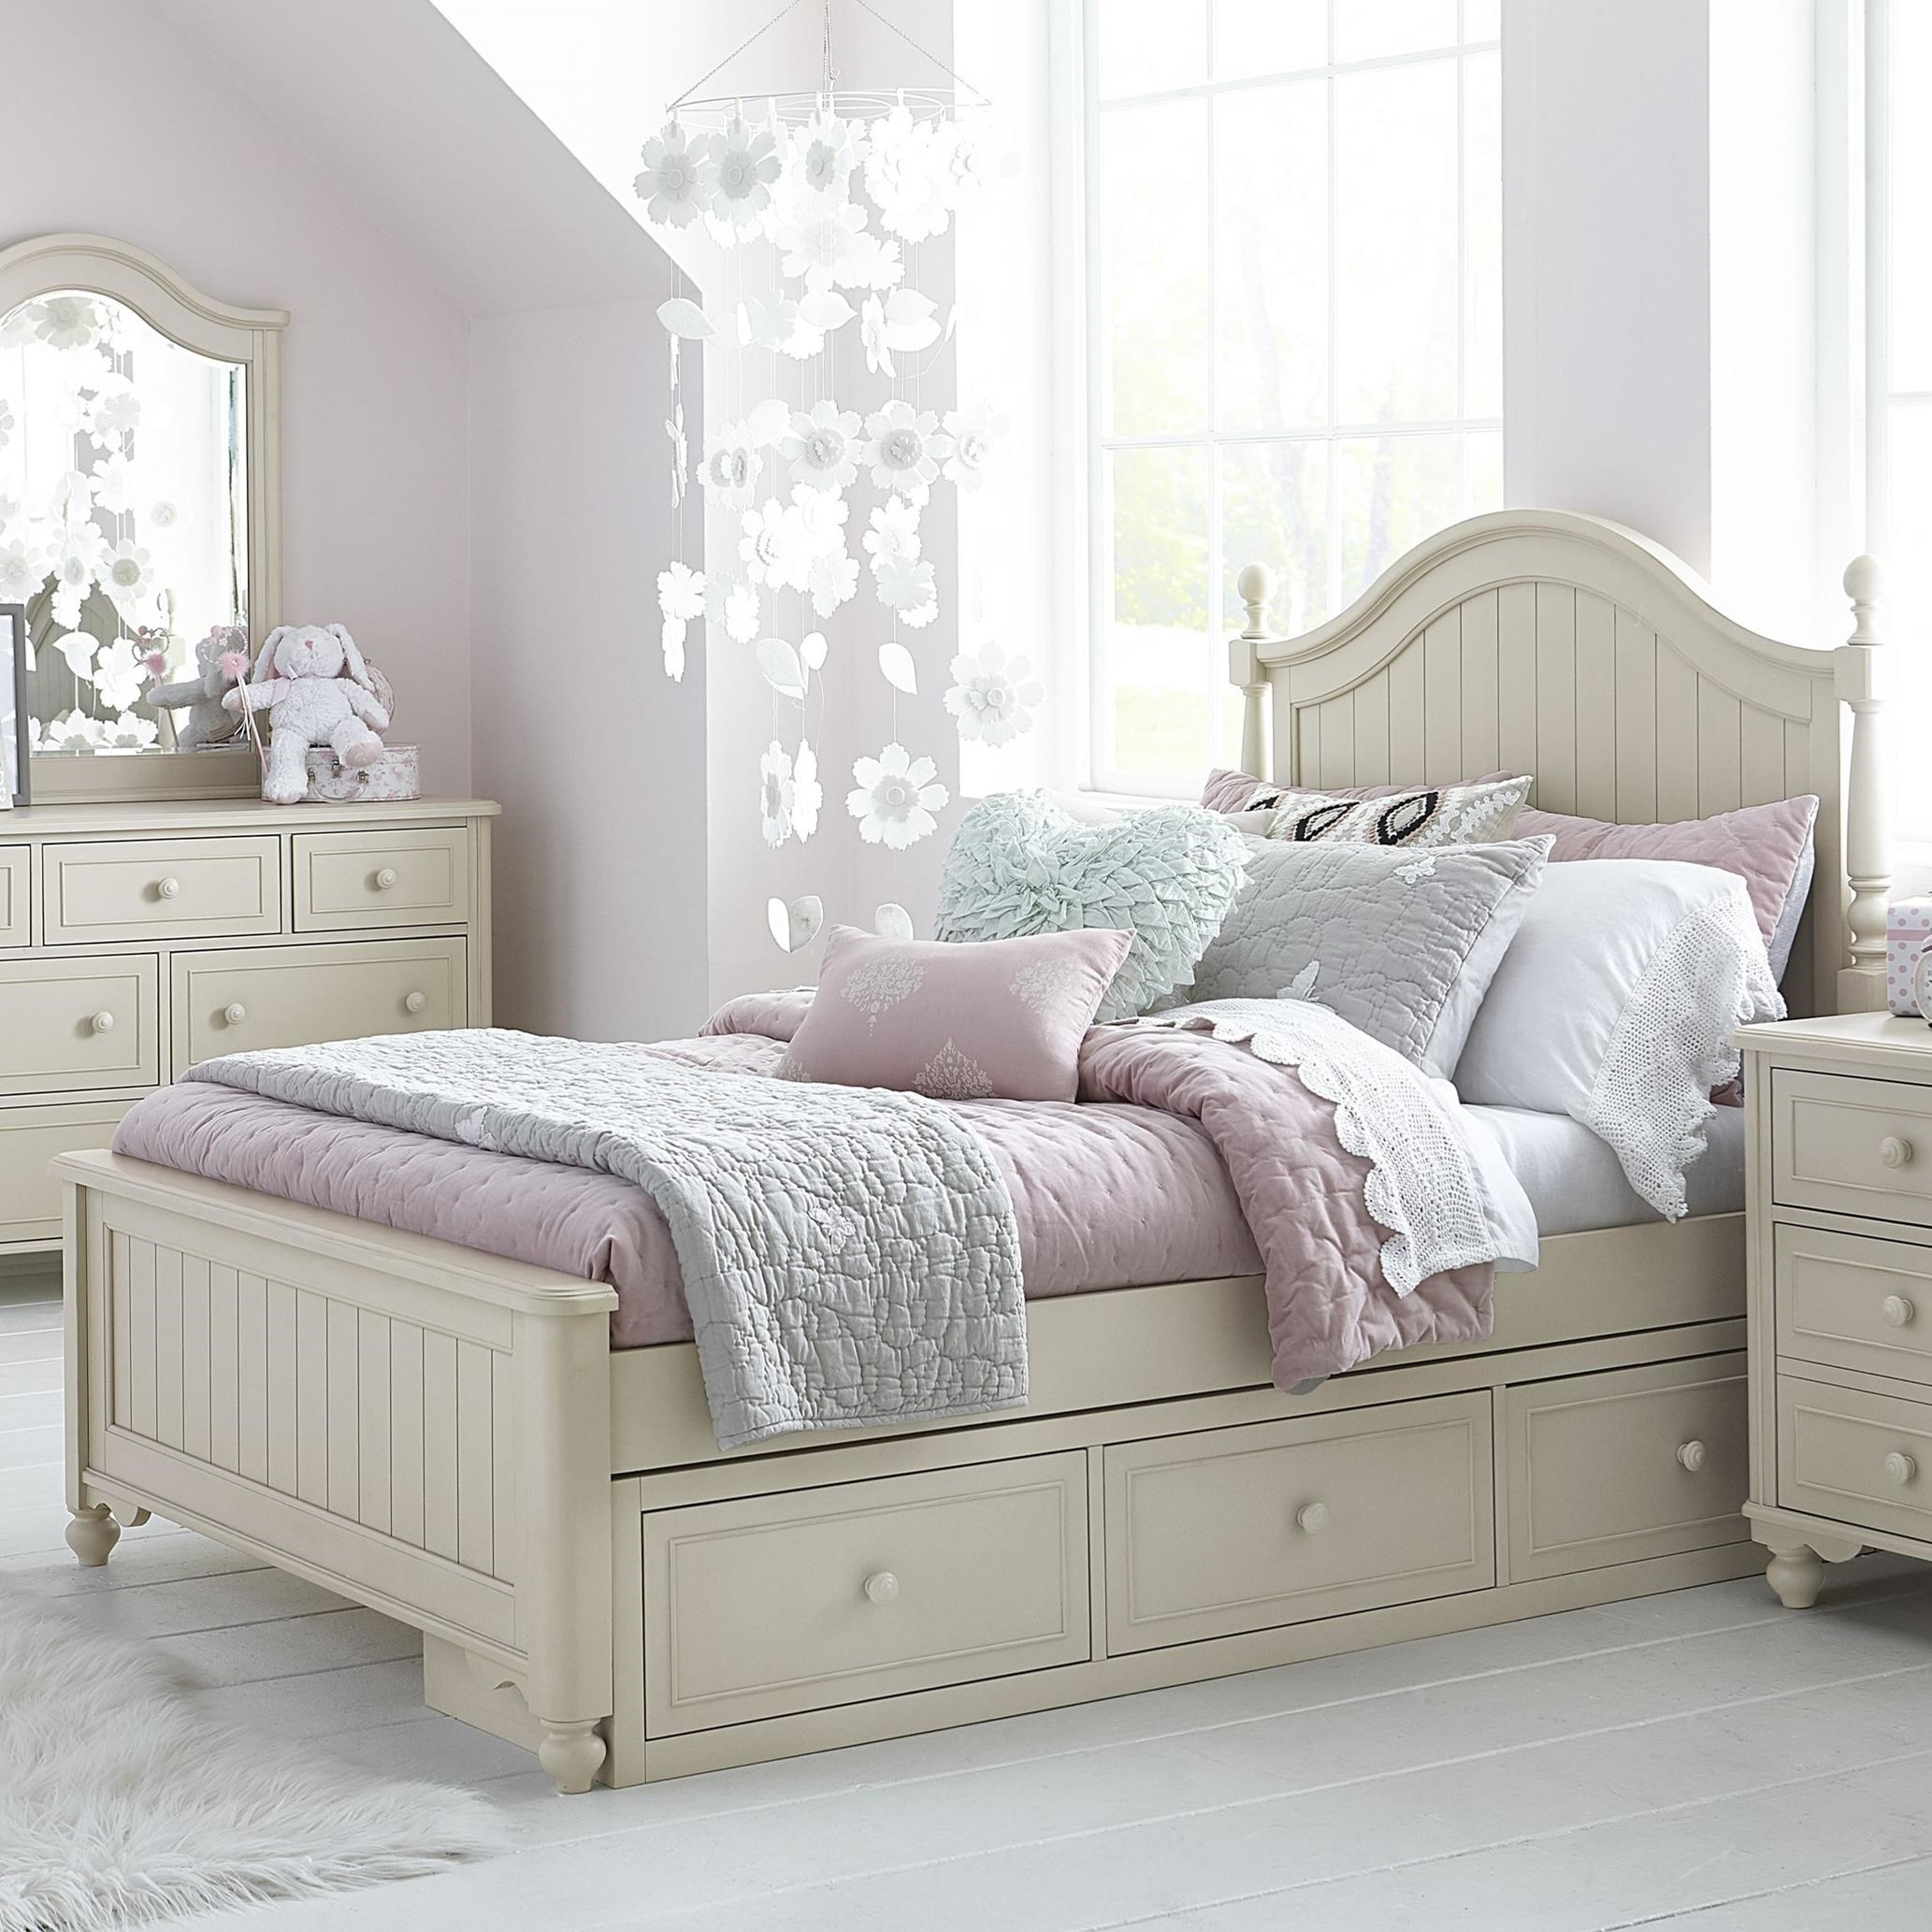 Legacy classic kids summerset full bed with storage drawer for Legacy classic bed